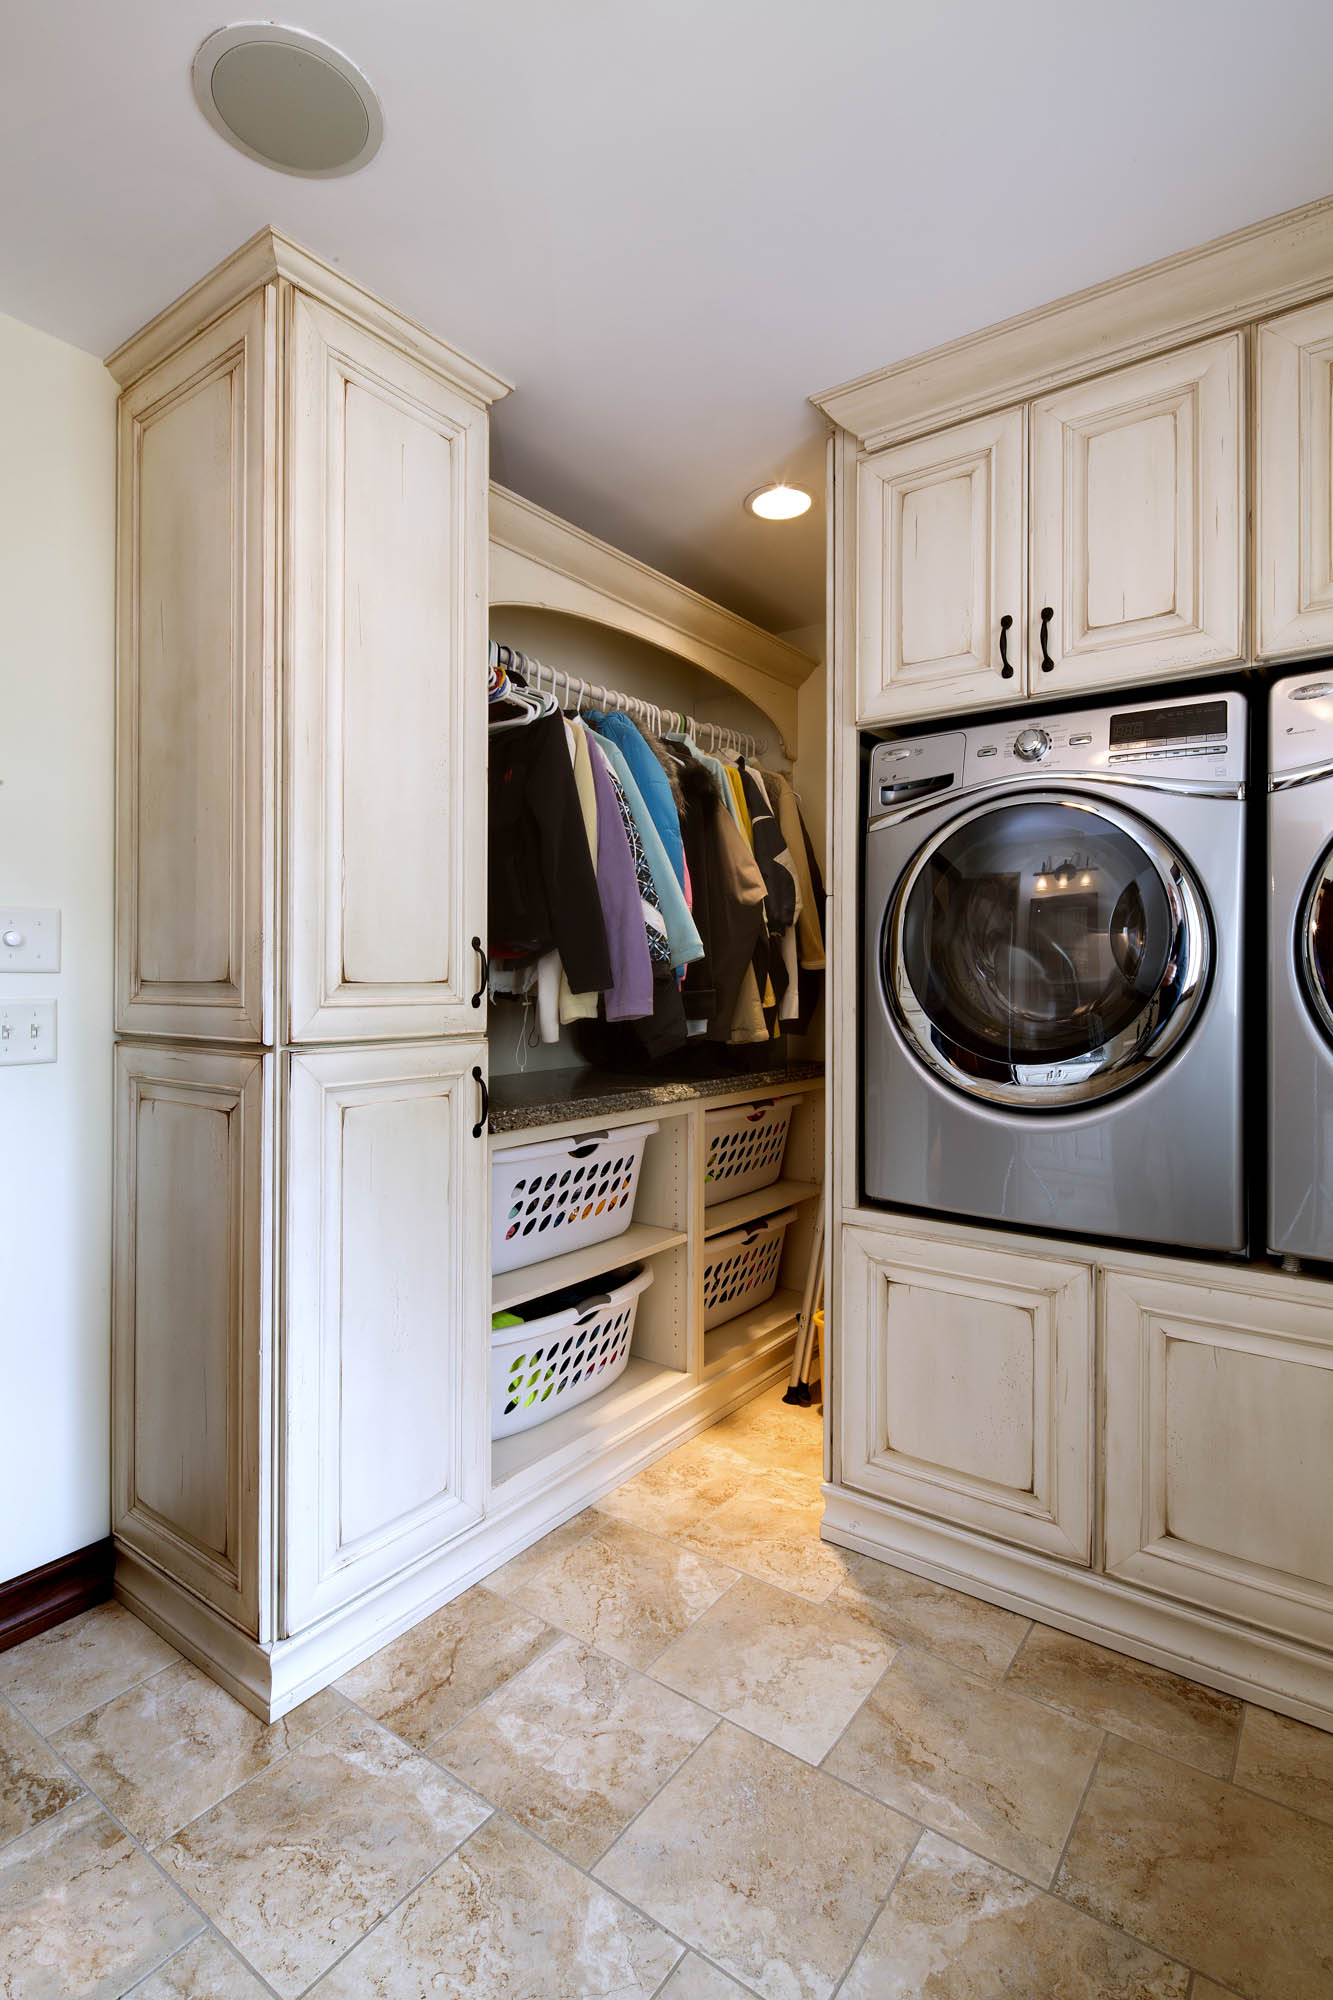 Painted laundry room cabinets in Vintage Soft Cream by Showplace Cabinetry - view 1